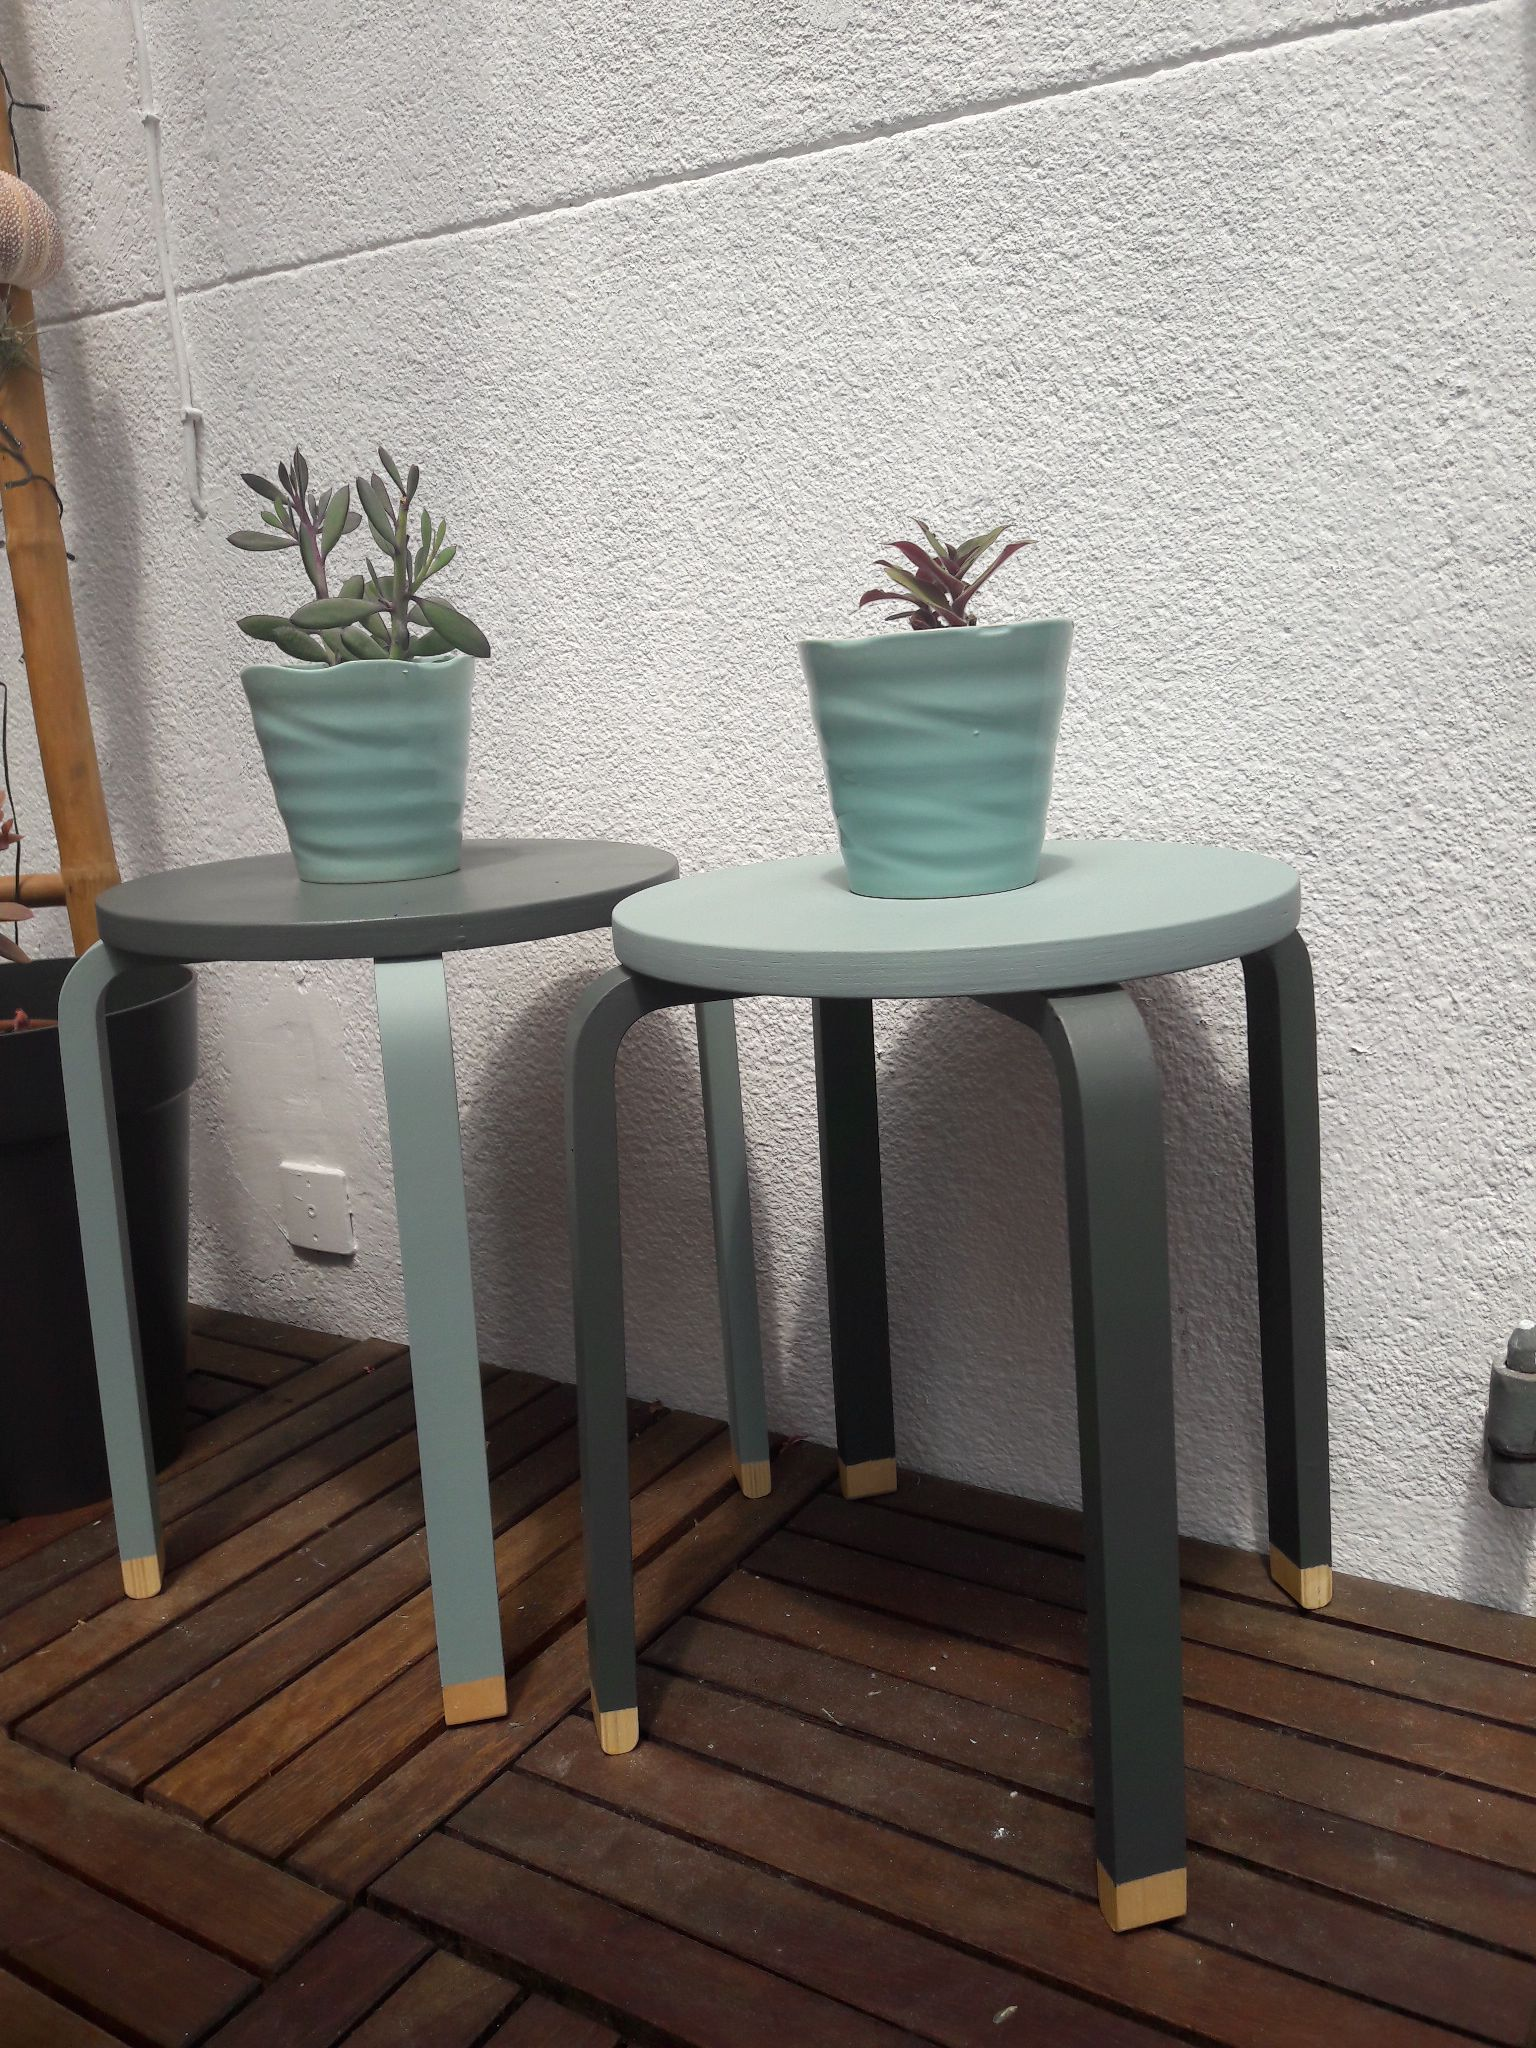 hack ikea gris fluo green ideas for the house pinterest ikea hack farrow ball and stools. Black Bedroom Furniture Sets. Home Design Ideas